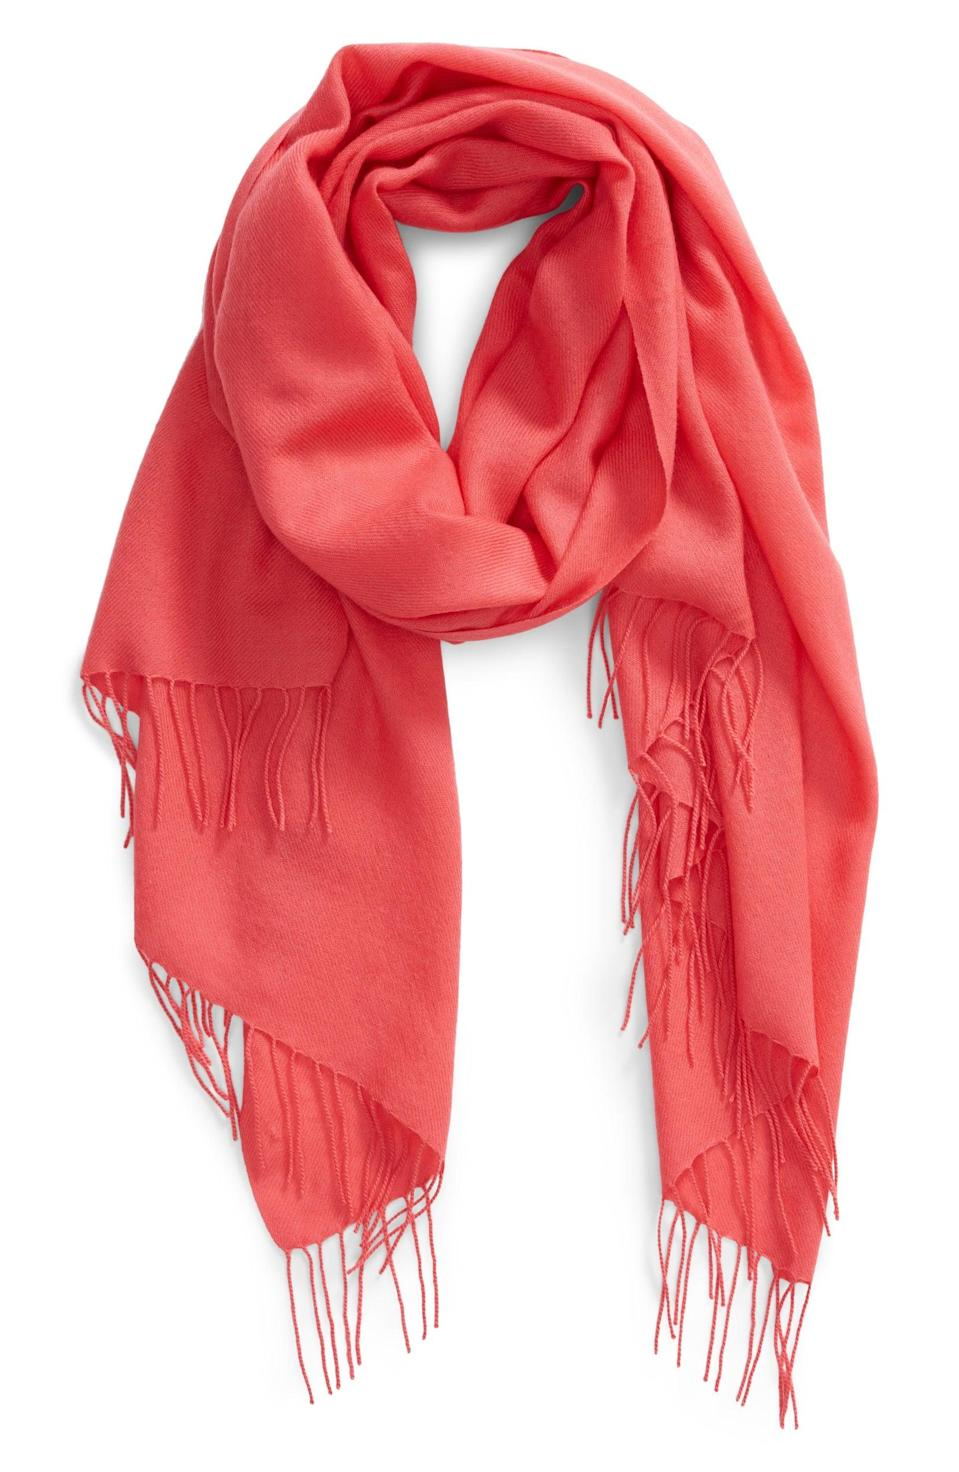 <p>This <span>Nordstrom Tissue Weight Wool &amp; Cashmere Scarf</span> ($99) can cover your neck, shoulders, or head. Plus, you can even use it as a blanket. It comes in a bunch of colors, but we love this coral shade.</p>